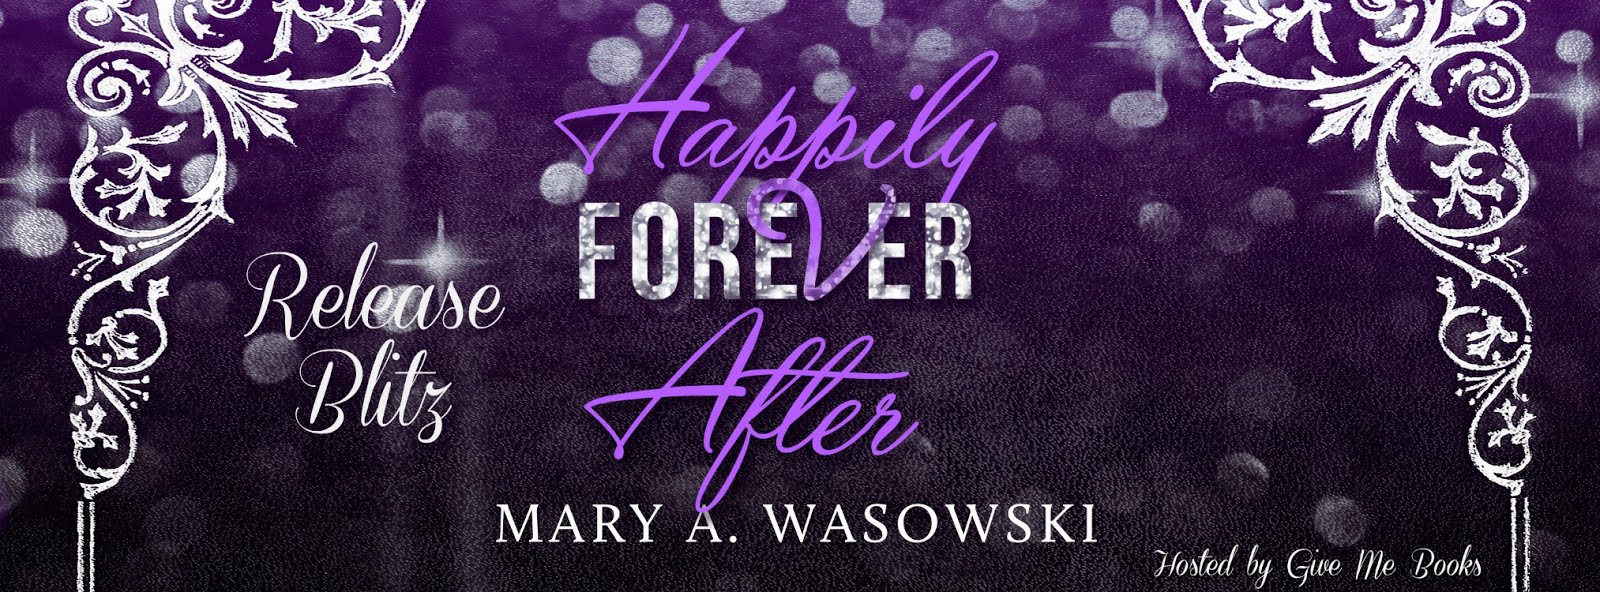 Happily Forever After Release Blitz